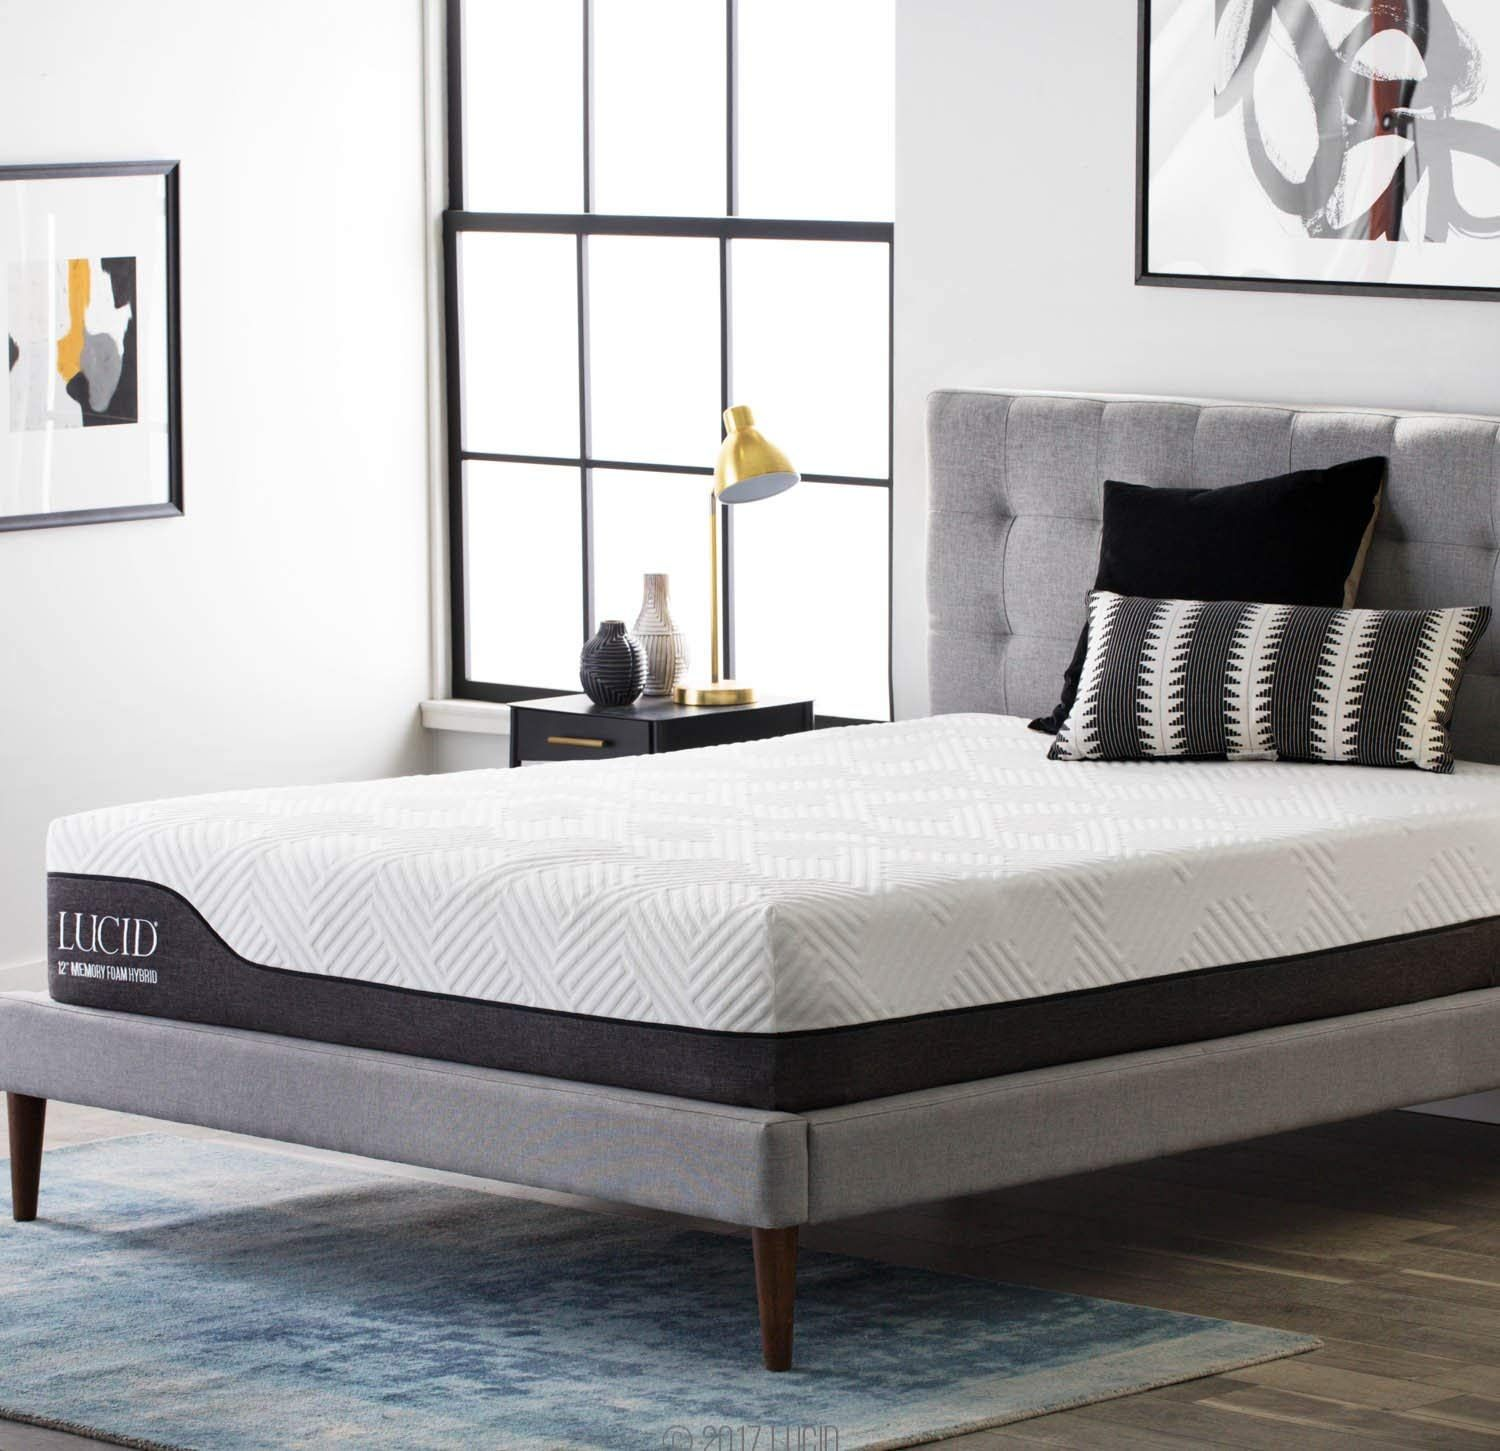 Lucid 12 Inch Queen Hybrid Mattress Bamboo Charcoal And Aloe Vera Infused Memory Foam Motion Hybrid Mattress Firm Memory Foam Mattress Memory Foam Mattress